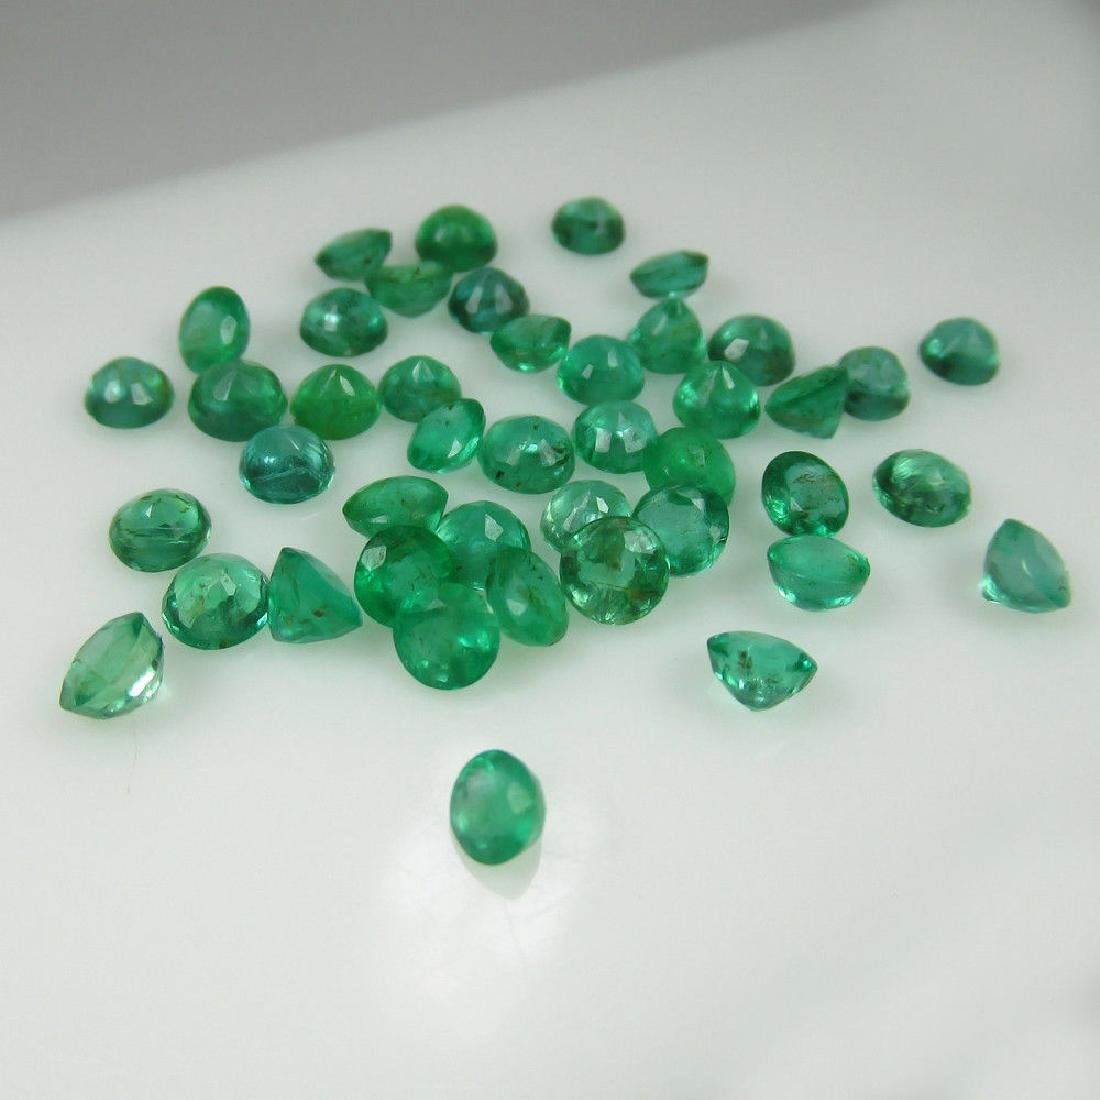 10.55 Ct Genuine 49 Loose Zambian Emerald Excellent